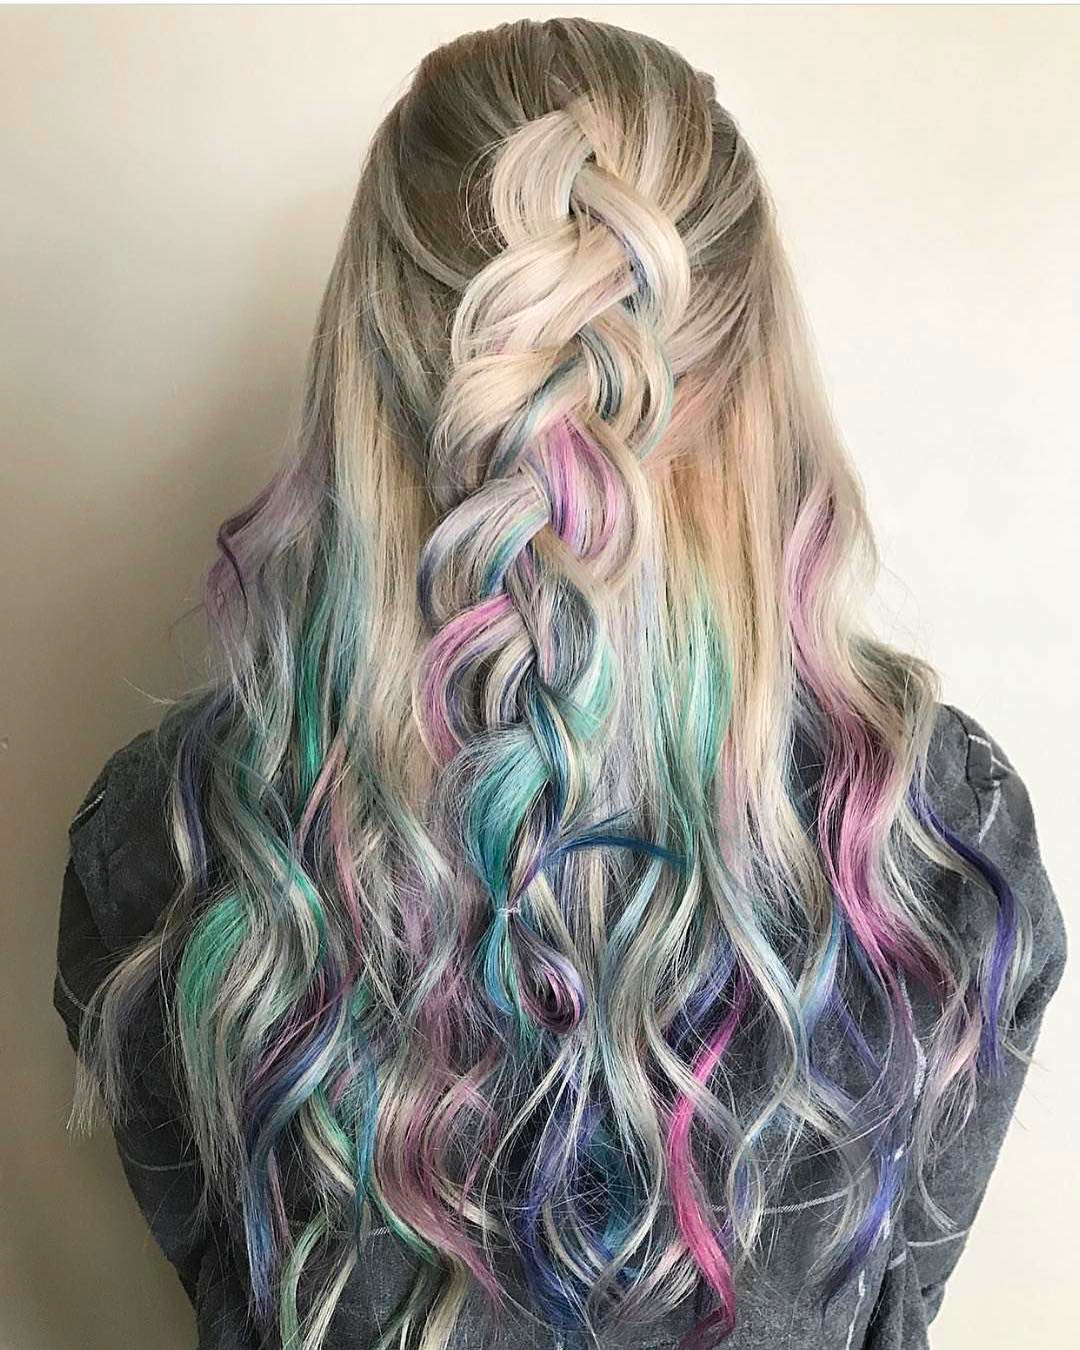 40 Trendy Long Hairstyles for Women to Try in 2019